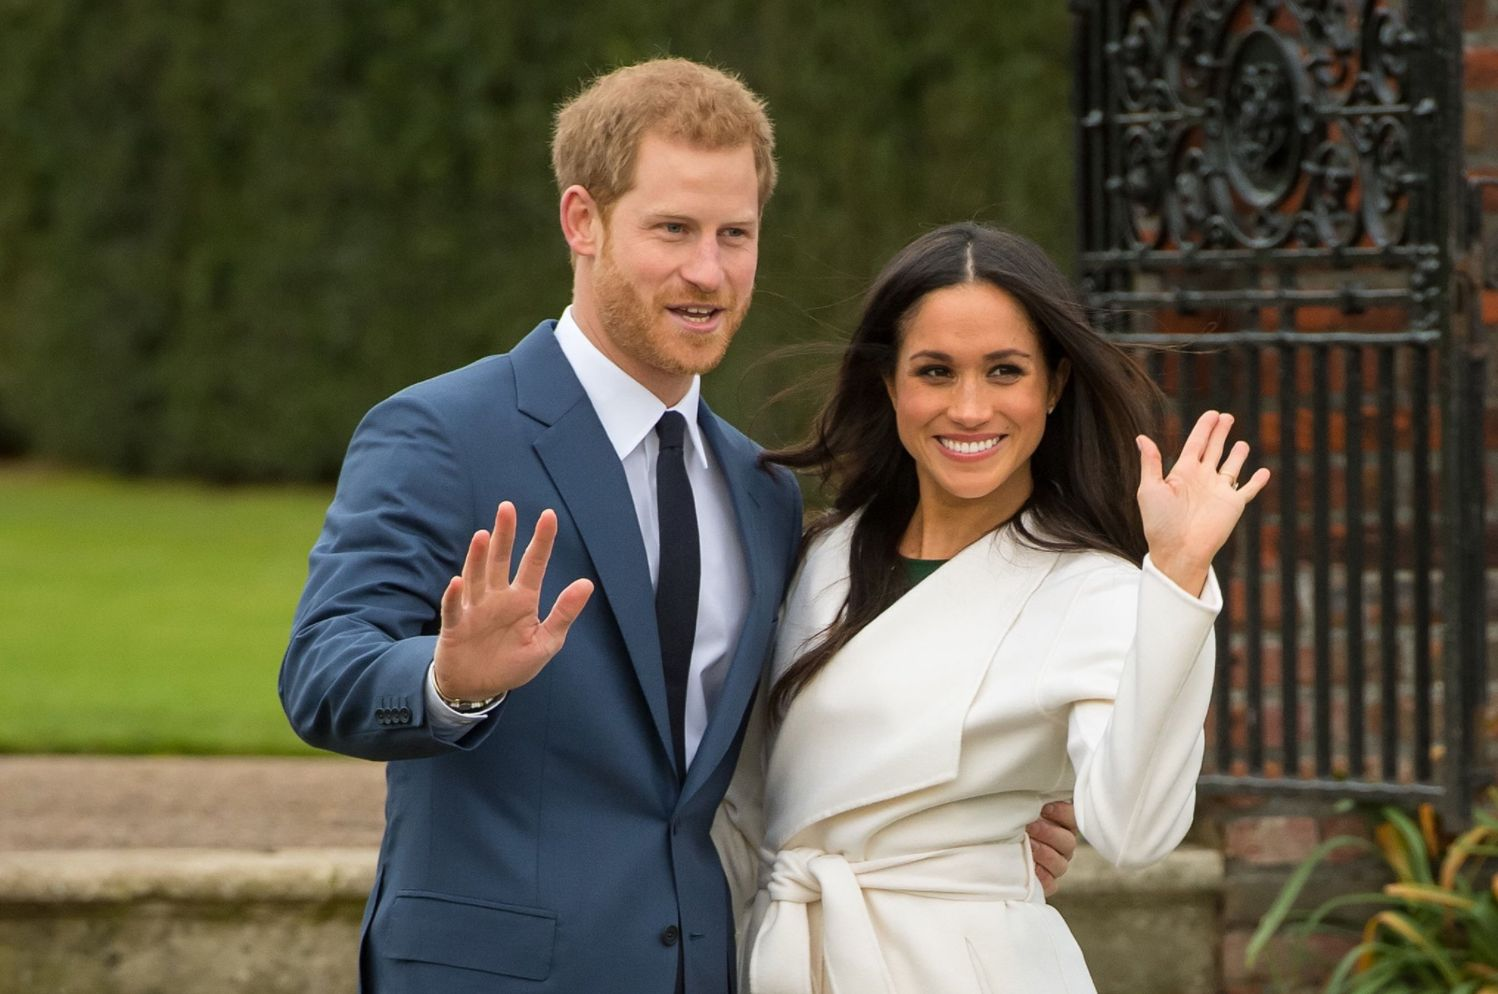 Prince Harry And Meghan Markle Reveal Royal Wedding